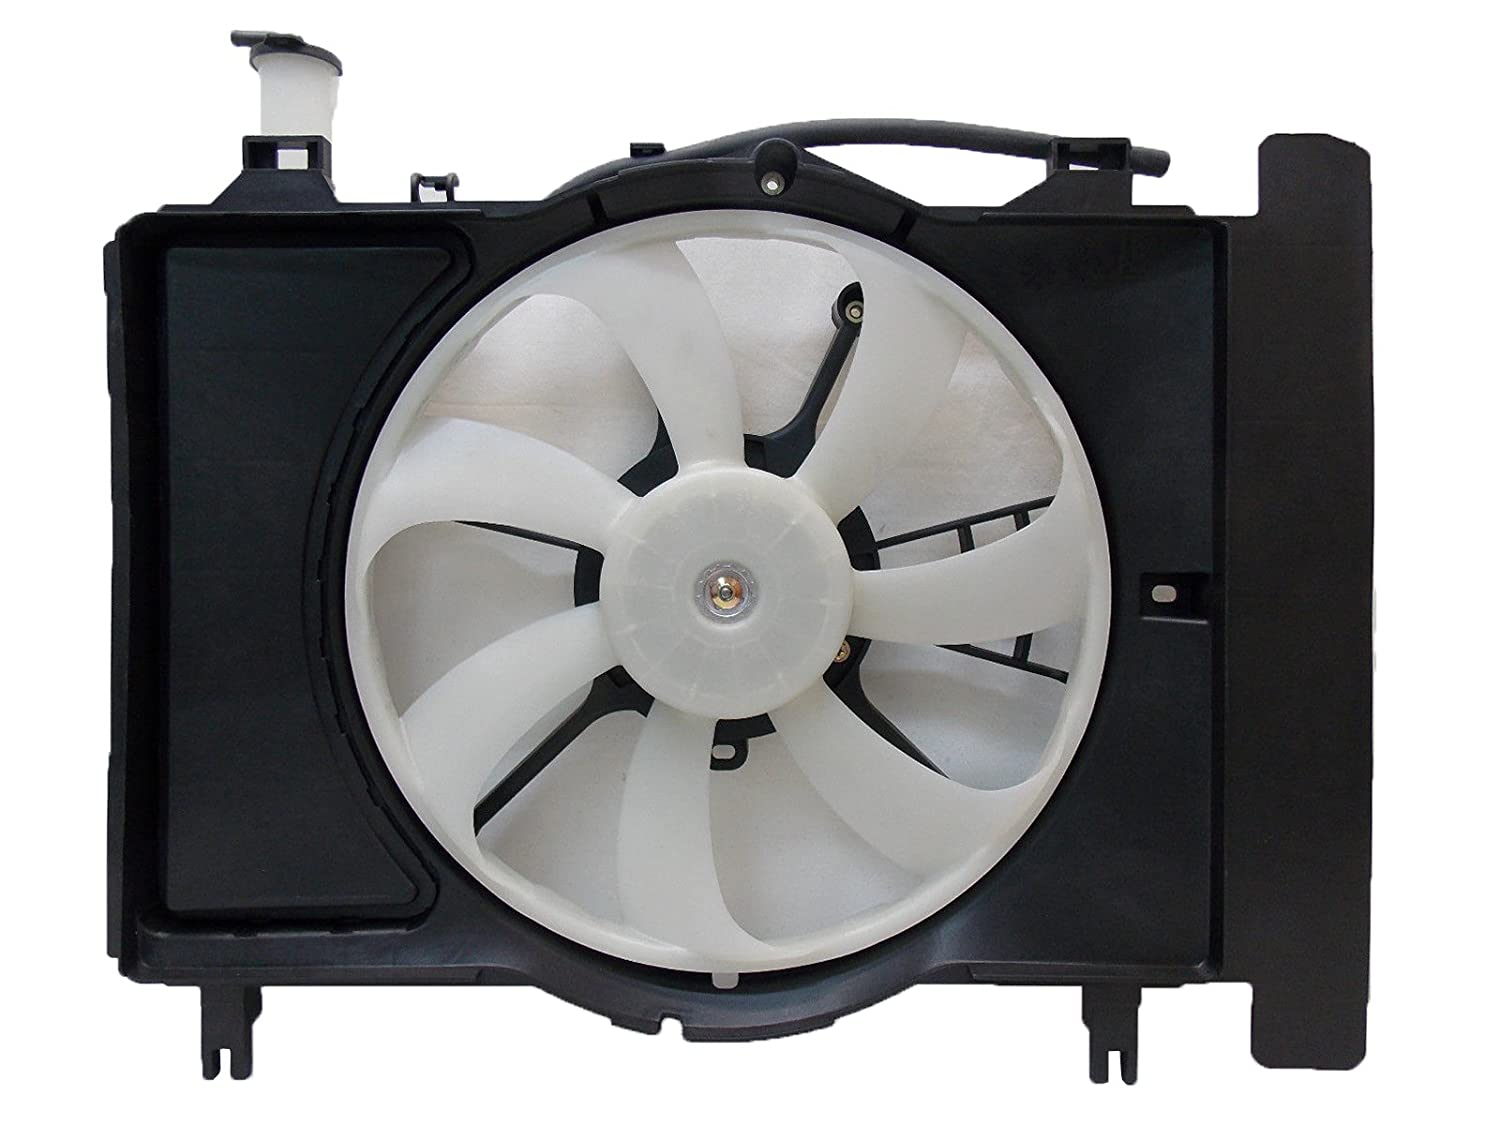 Sunbelt Radiator And Condenser Fan For Toyota Yaris Scion xD TO3115145 Drop in Fitment